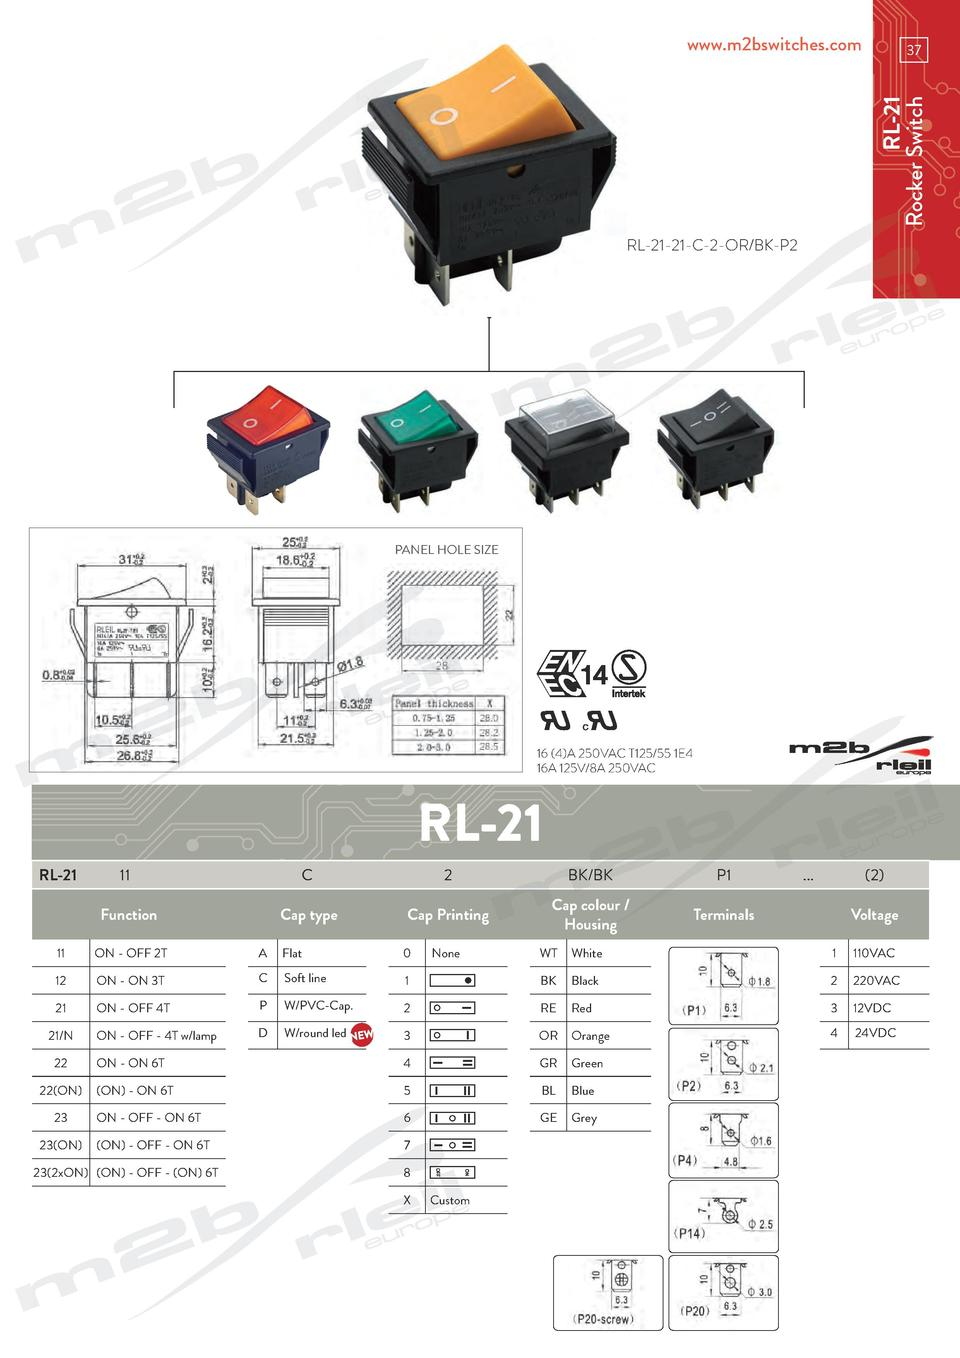 www.m2bswitches.com  RL-21 Rocker Switch  37  RL-21-21-C-2-OR BK-P2  PANEL HOLE SIZE  16  4 A 250VAC T125 55 1E4 16A 125V ...